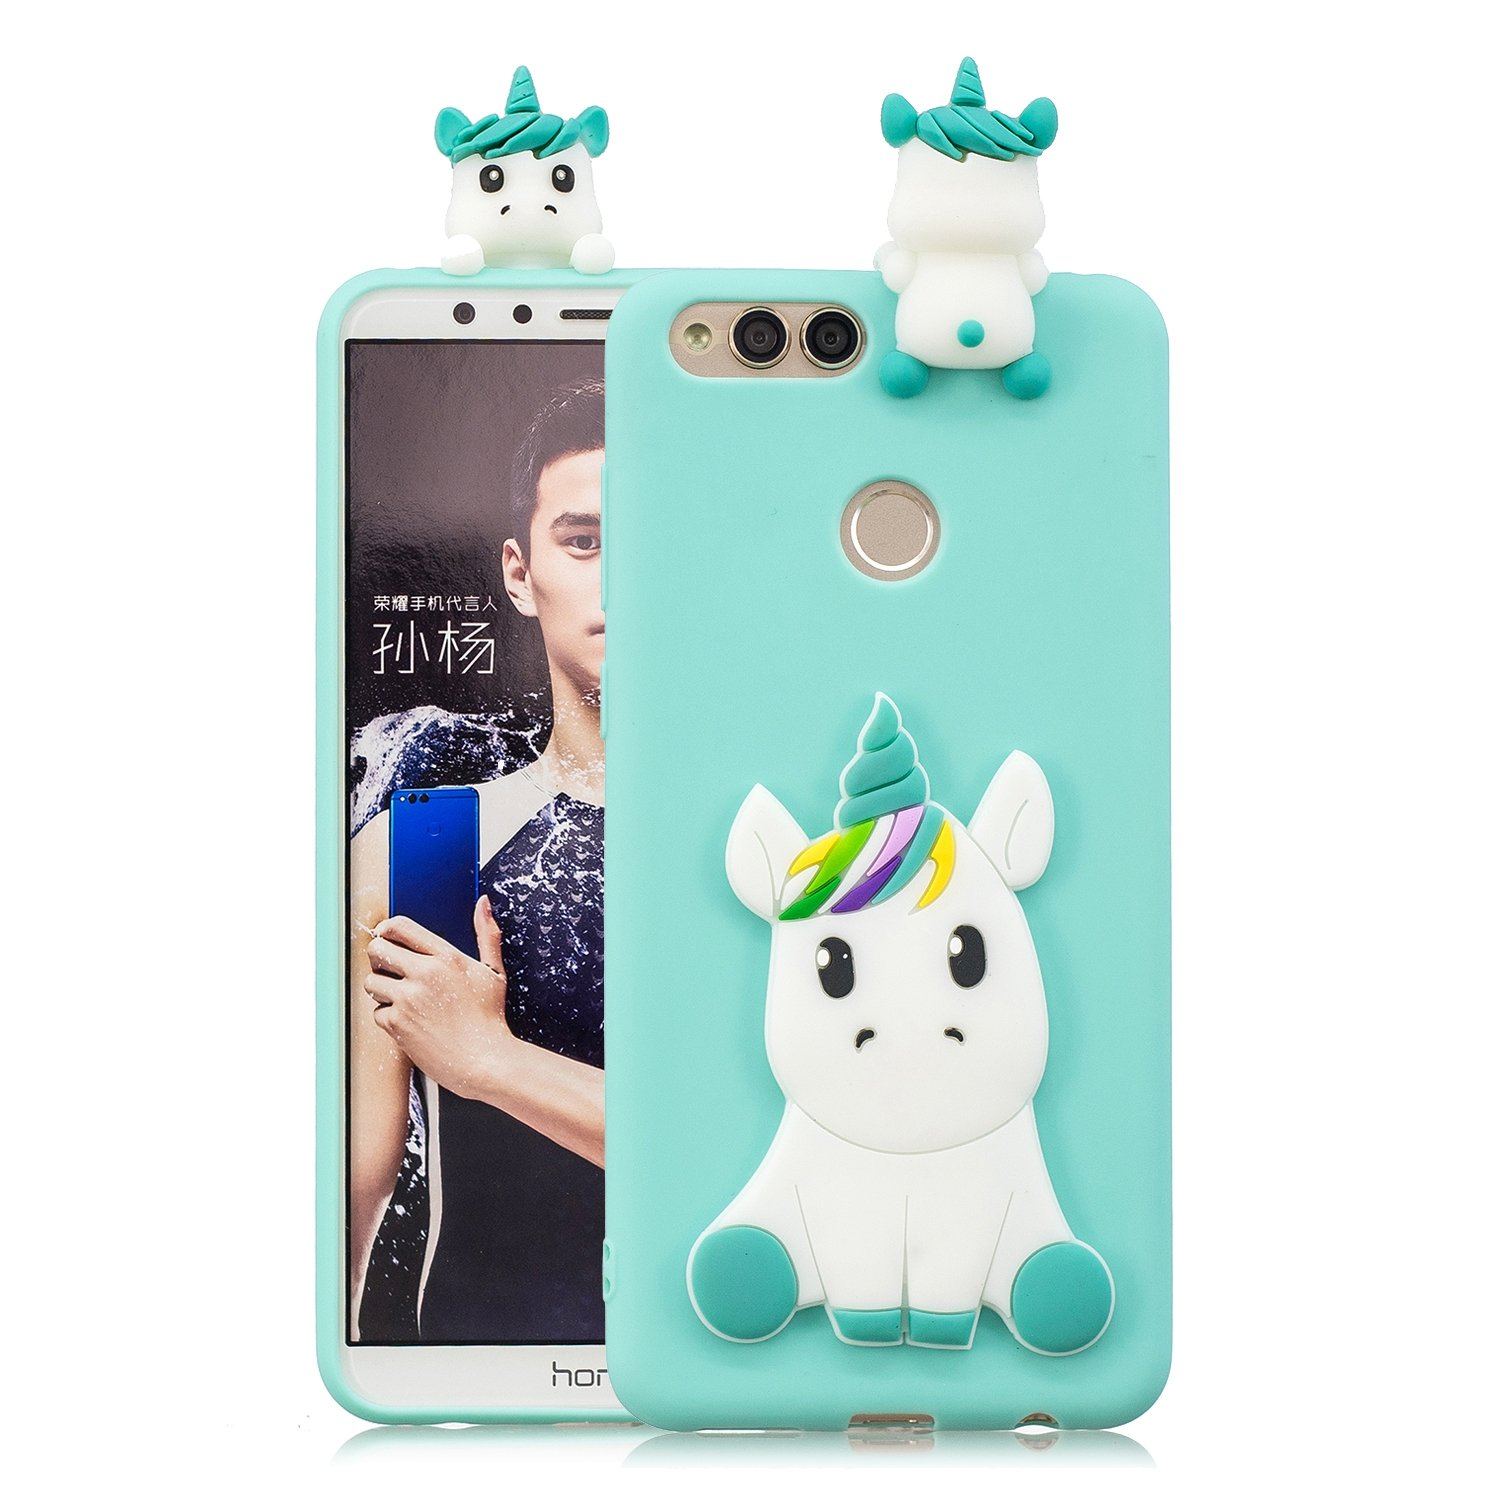 DAMONDY Huawei Mate SE case, Huawei Honor 7X case, 3D Cute Unicorn Cartoon Soft Gel Silicone Design Rubber Skin Thin Protective Cover Phone Case for Huawei Mate SE/Huawei Honor 7X-Black